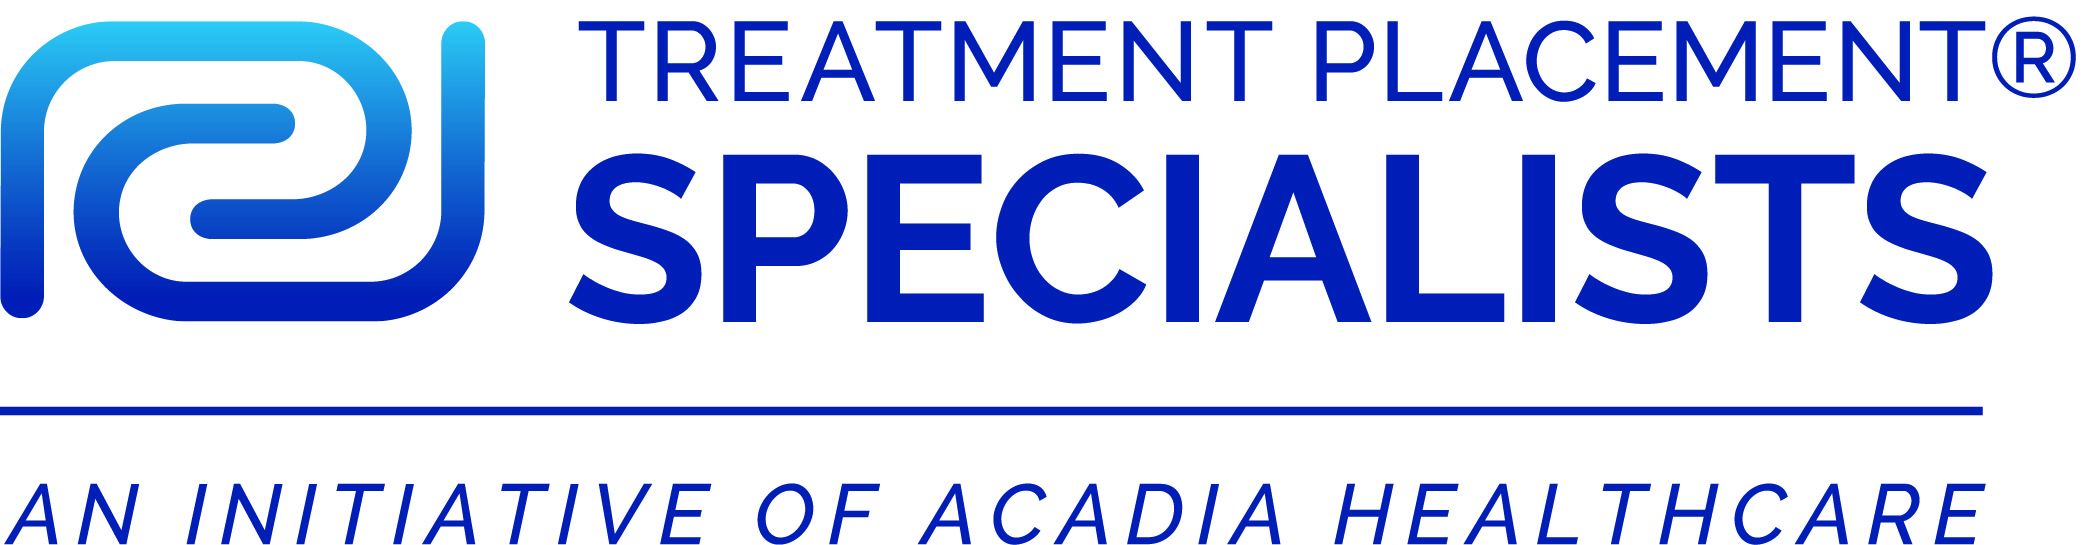 Acadia Healthcare - Treatment Placement Specialist